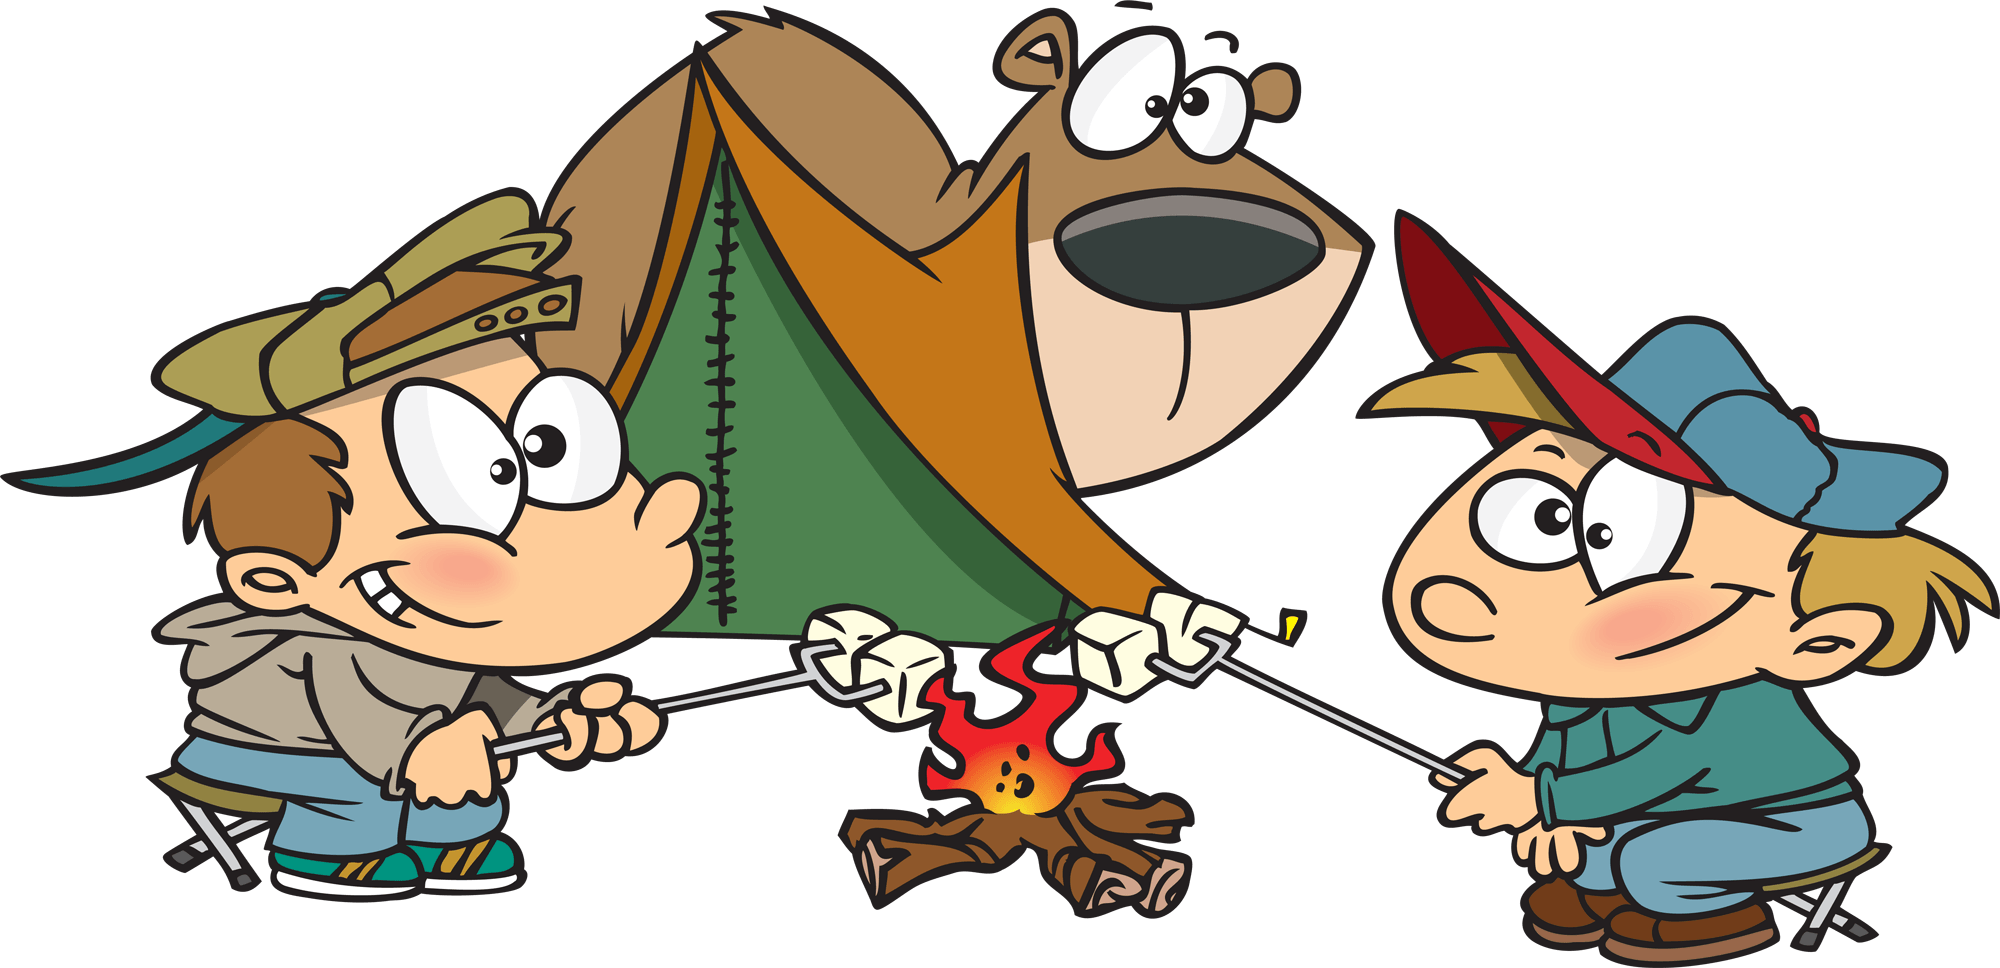 Camping clipart funny clipart black and white Funny Camping Cliparts - Cliparts Zone clipart black and white